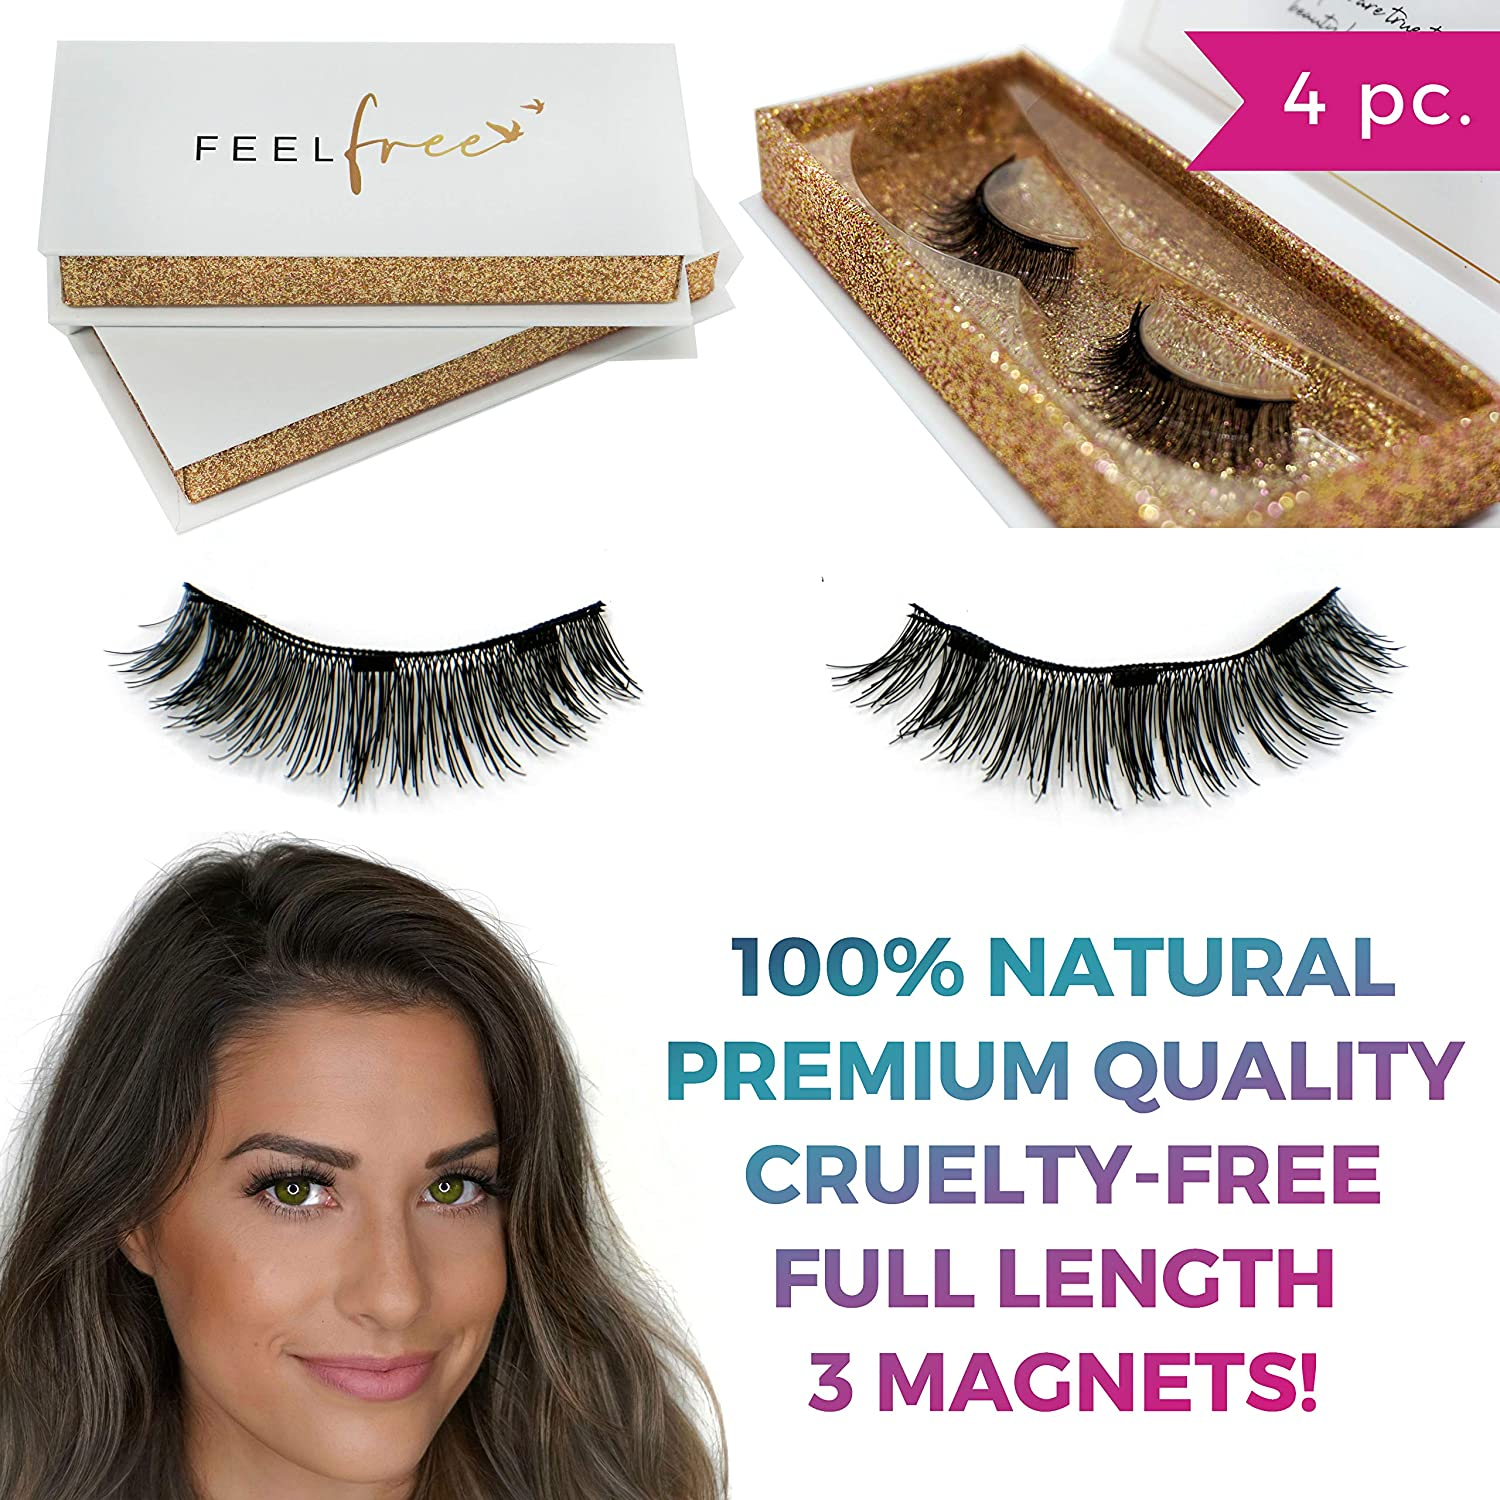 Premium Triple Magnetic Eyelashes by Feel Free Beauty. Enhance Your Natural Beauty With Full Length Lashes -100% Natural Silk, Cruelty-Free, Easy To Apply, Reusable, Forms To Eye's Natural Shape